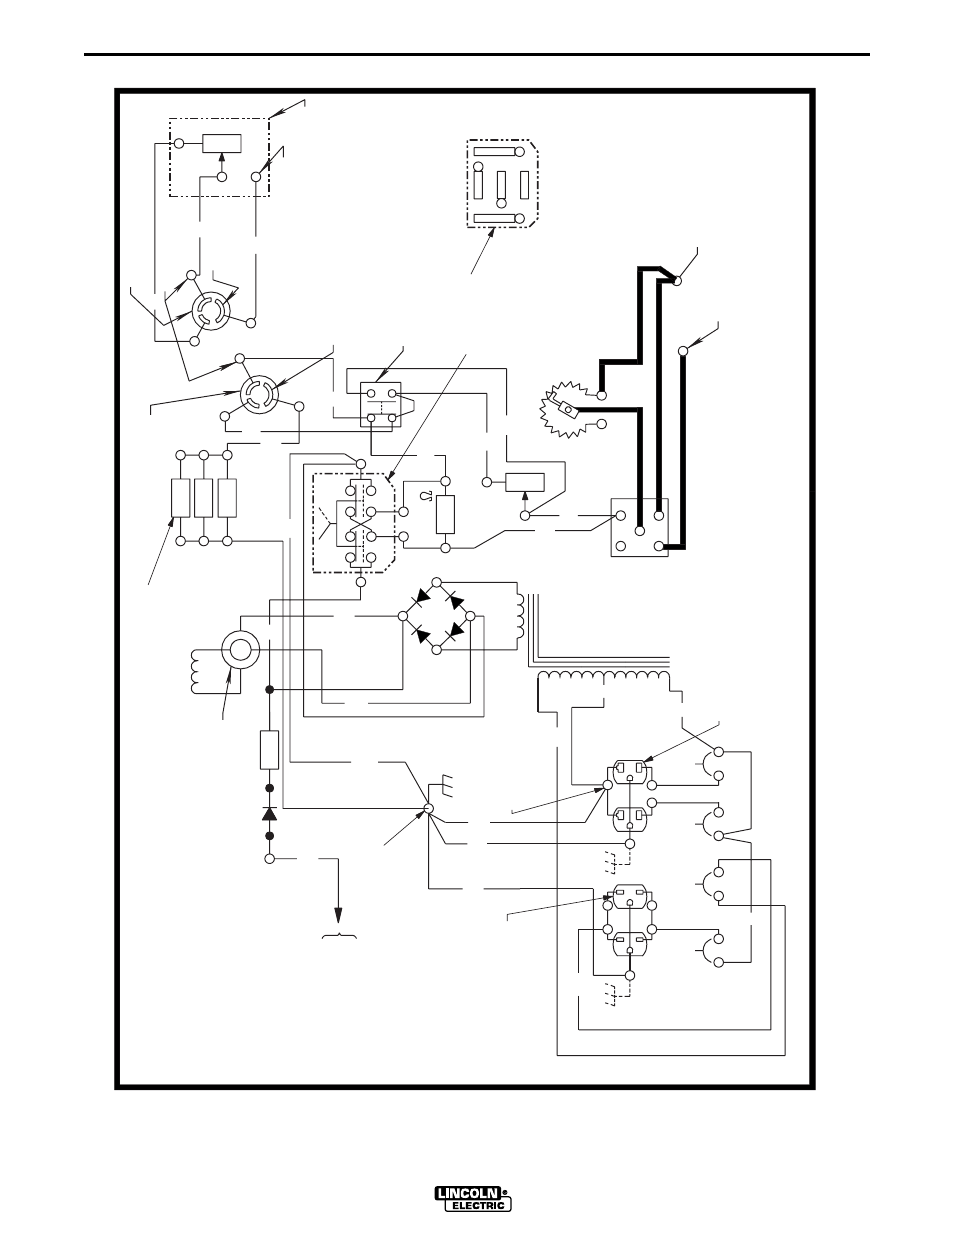 electrical control wiring diagrams wiring diagrams  sae400 weld n air  control wiring diagram sae  wiring diagrams  sae400 weld n air